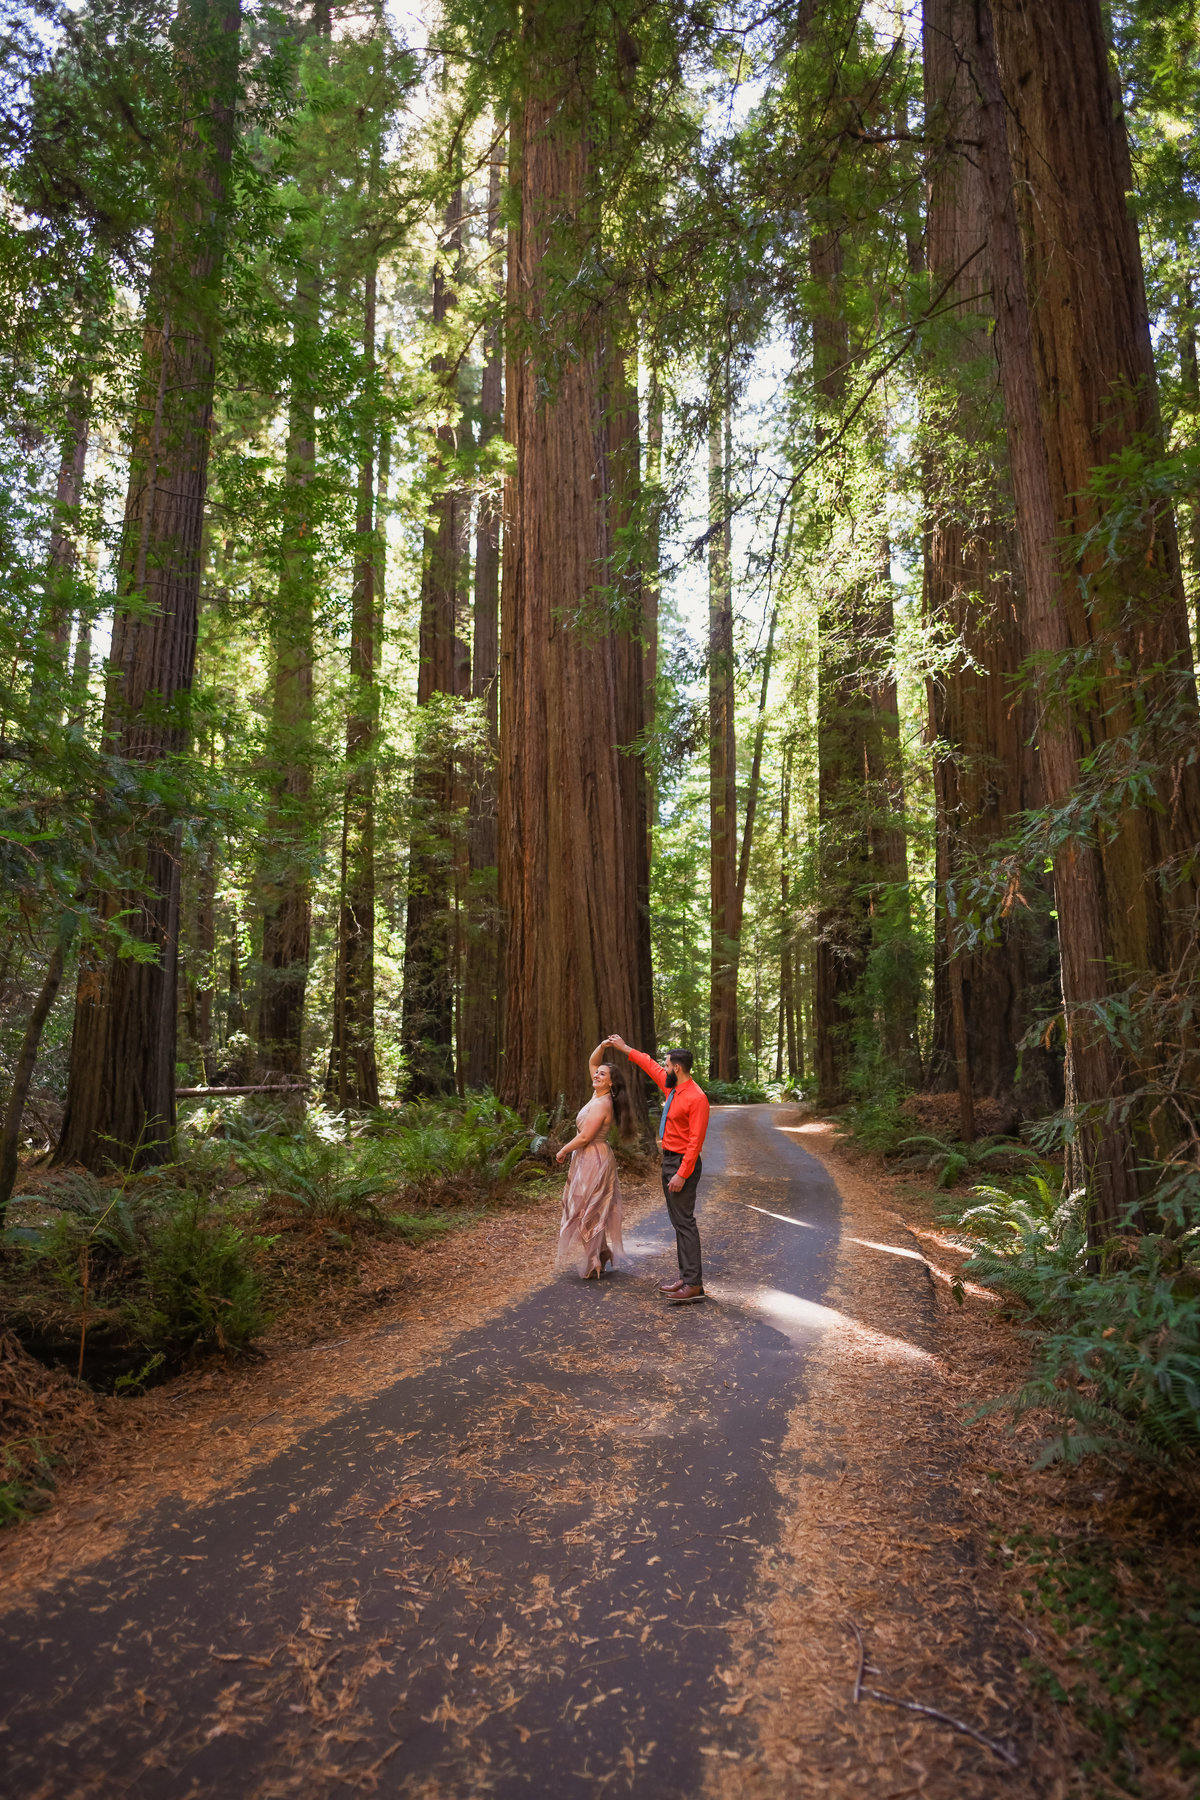 Redway-California-engagement-photographer-Parky's-Pics-Photography-Redwoods-Avenue-of-the-Giants-engagement-10.jpg